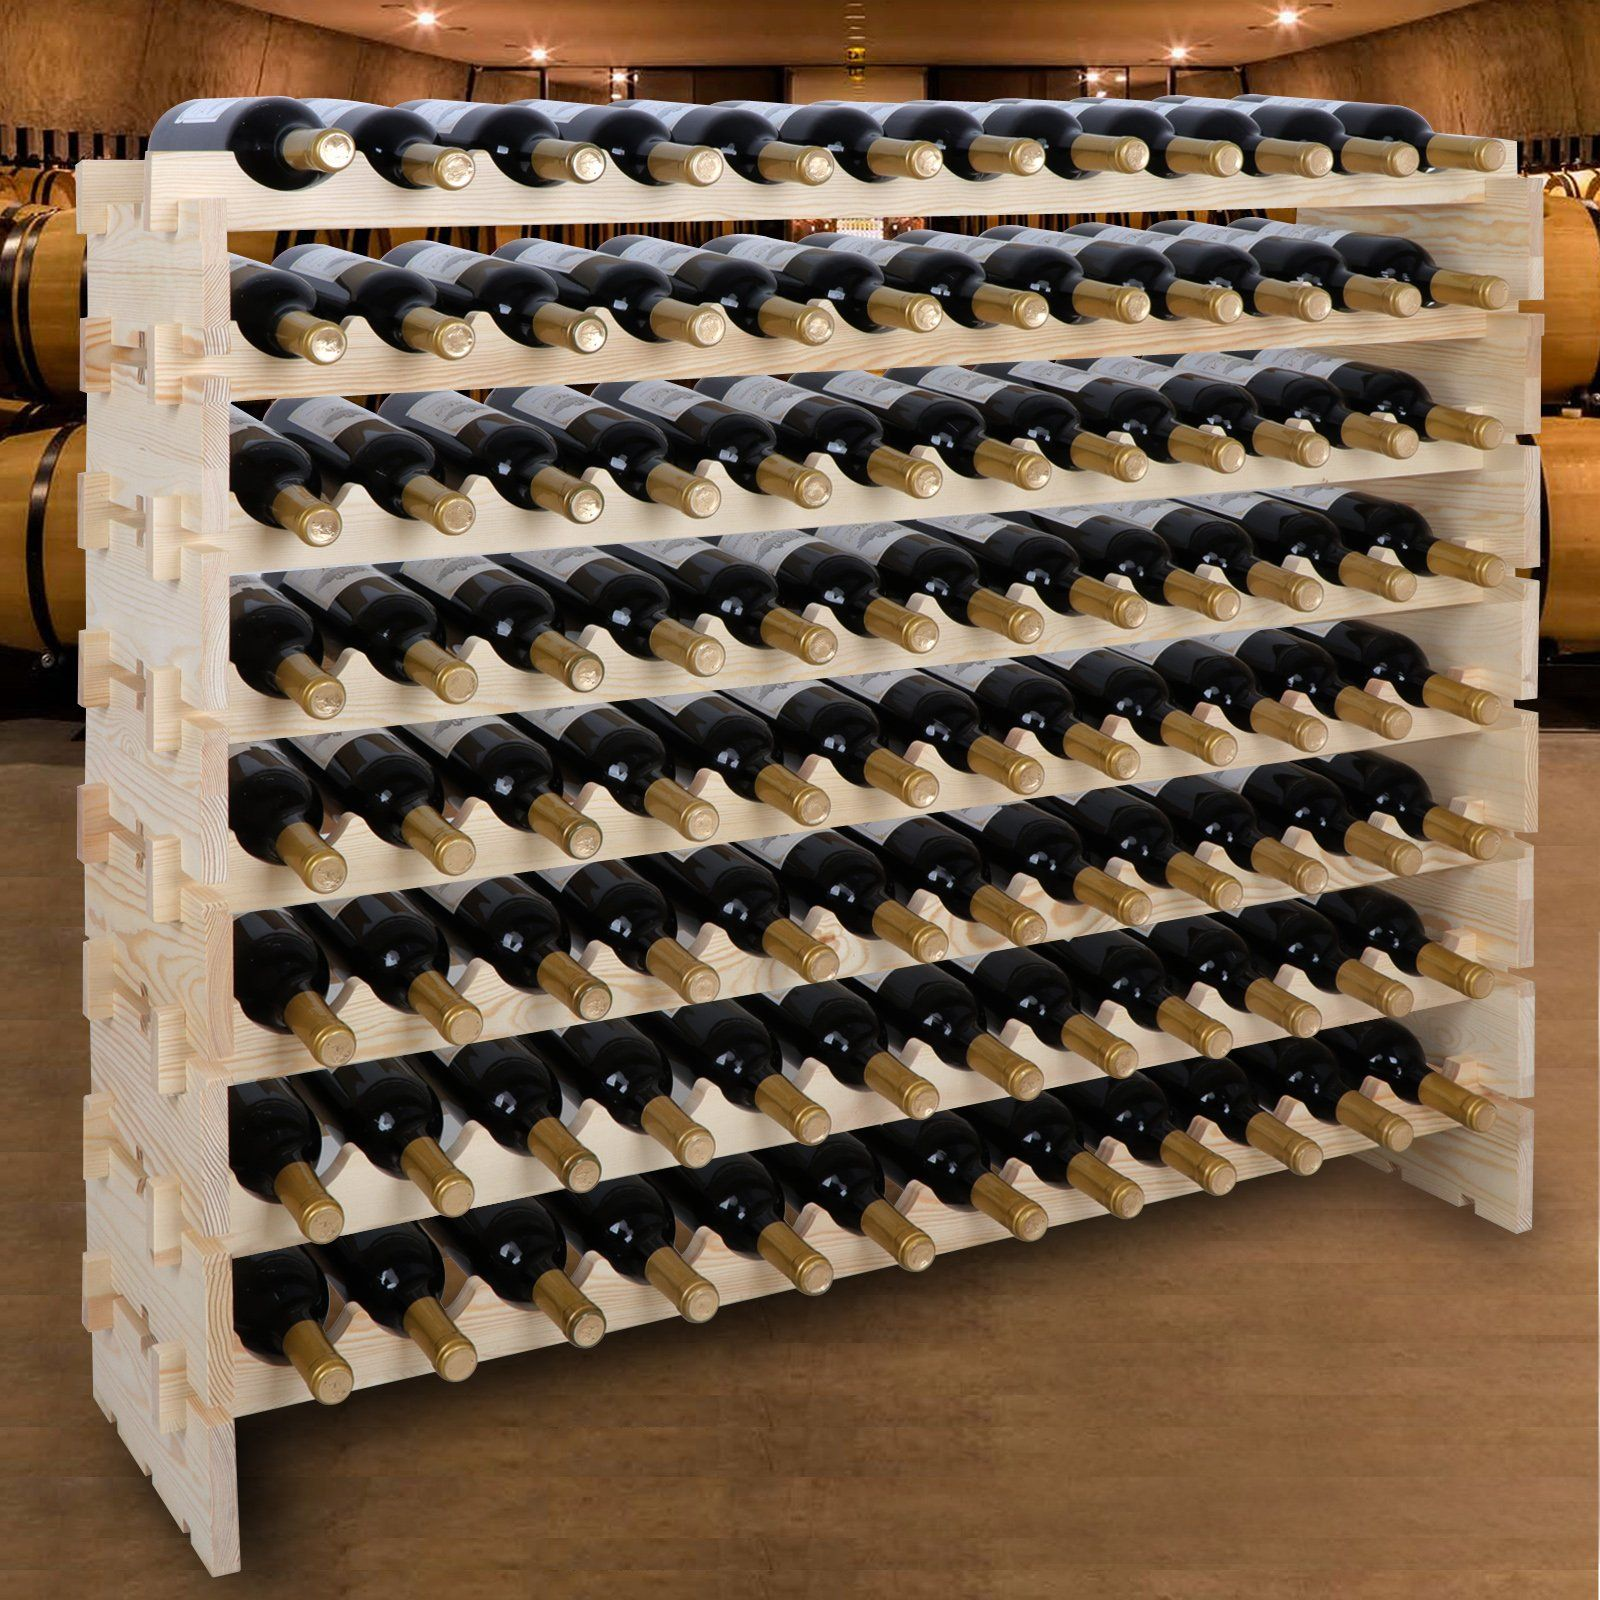 Best Wooden Wine Racks 2019 The Best Wine Racks For Home Wine Rack Storage Wooden Wine Rack Wine Rack